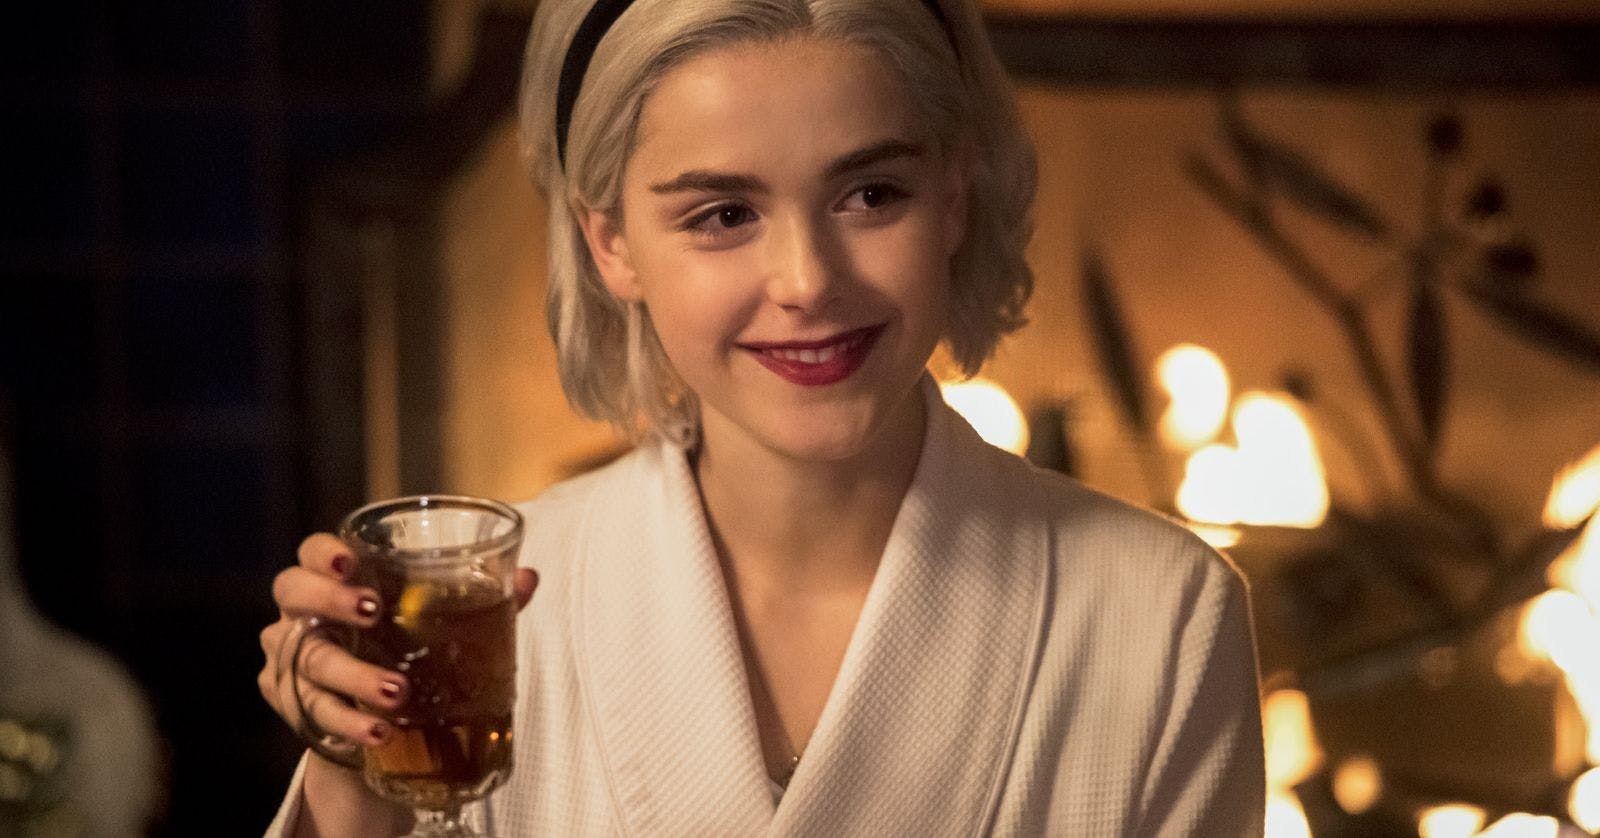 The Exact Red Lipstick Sabrina Spellman Wears Chilling